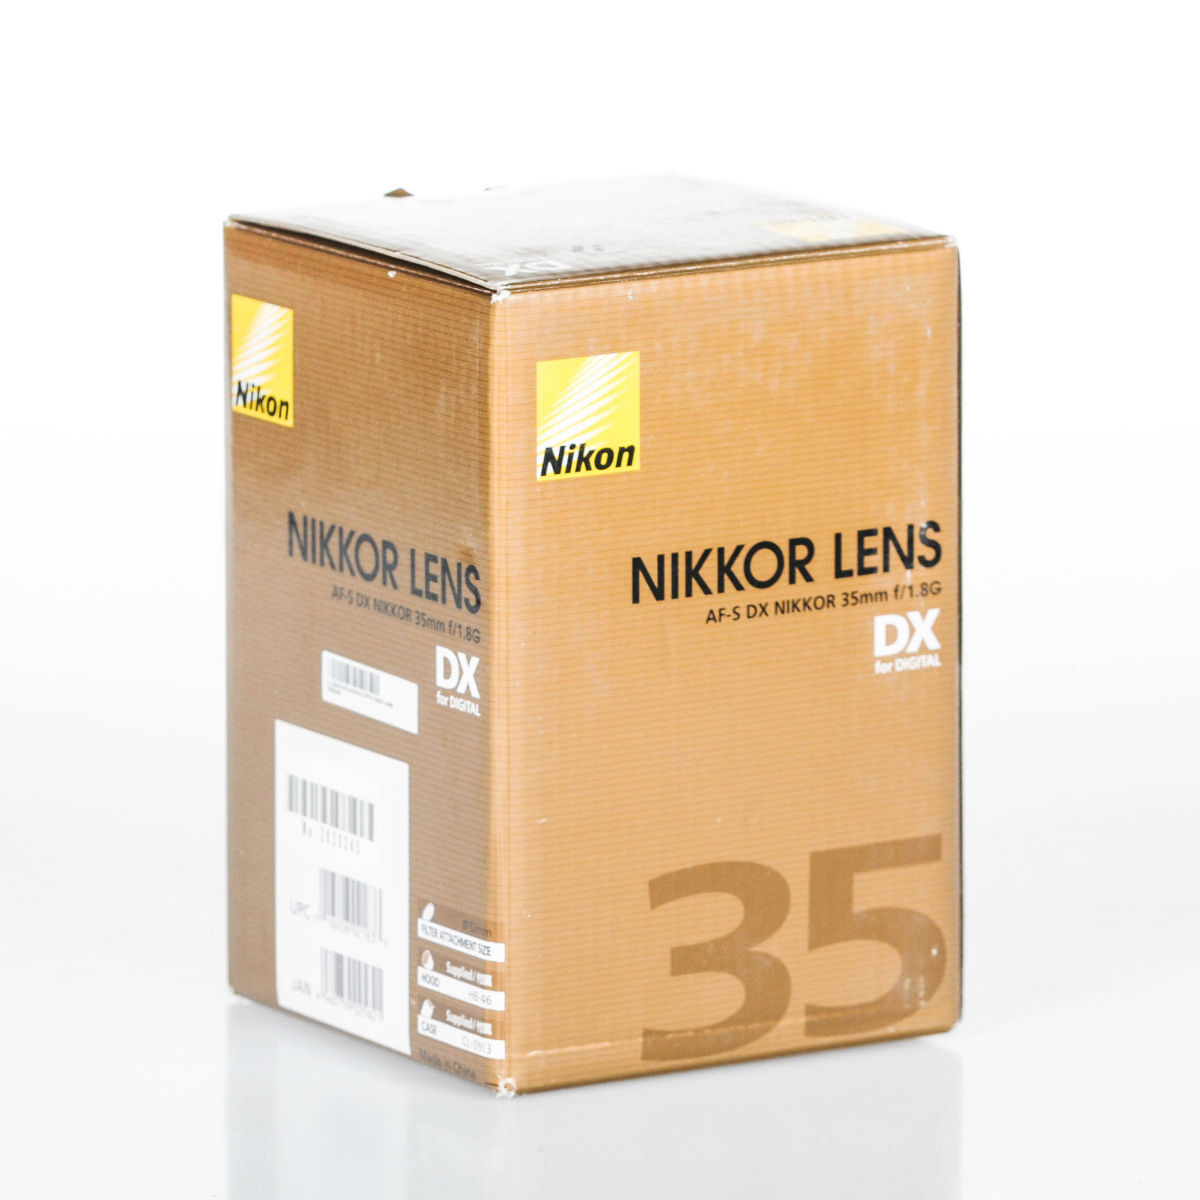 Image of Nikon AF-S DX NIKKOR 35mm f/1.8G Lens